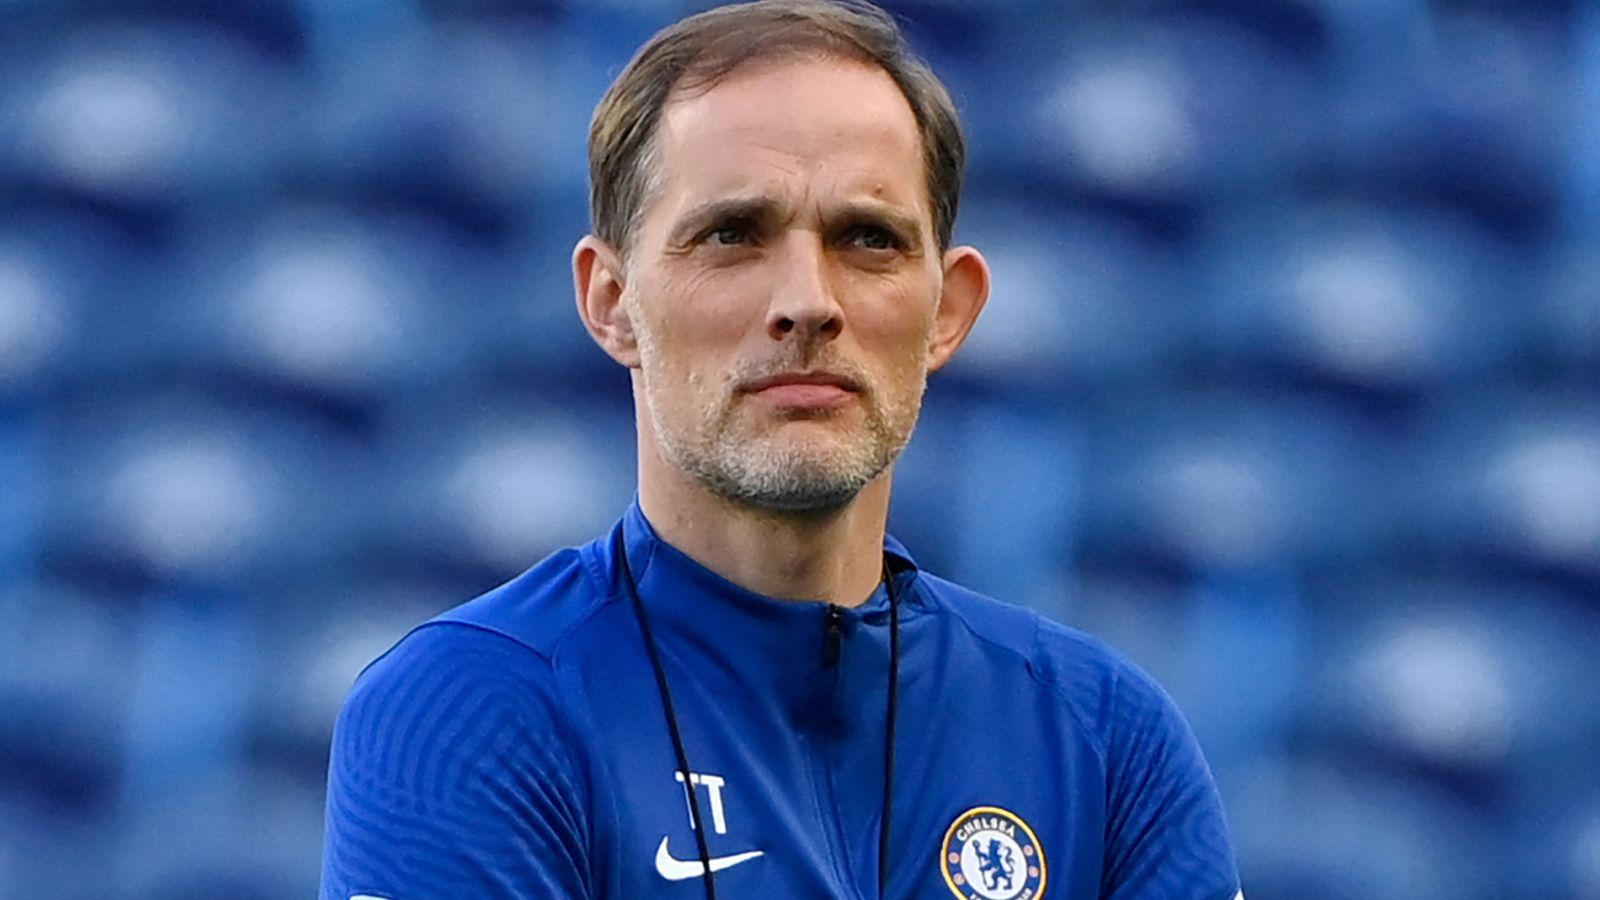 Thomas Tuchel: Chelsea boss signs two-year extension to his deal at Stamford Bridge after winning Champions League